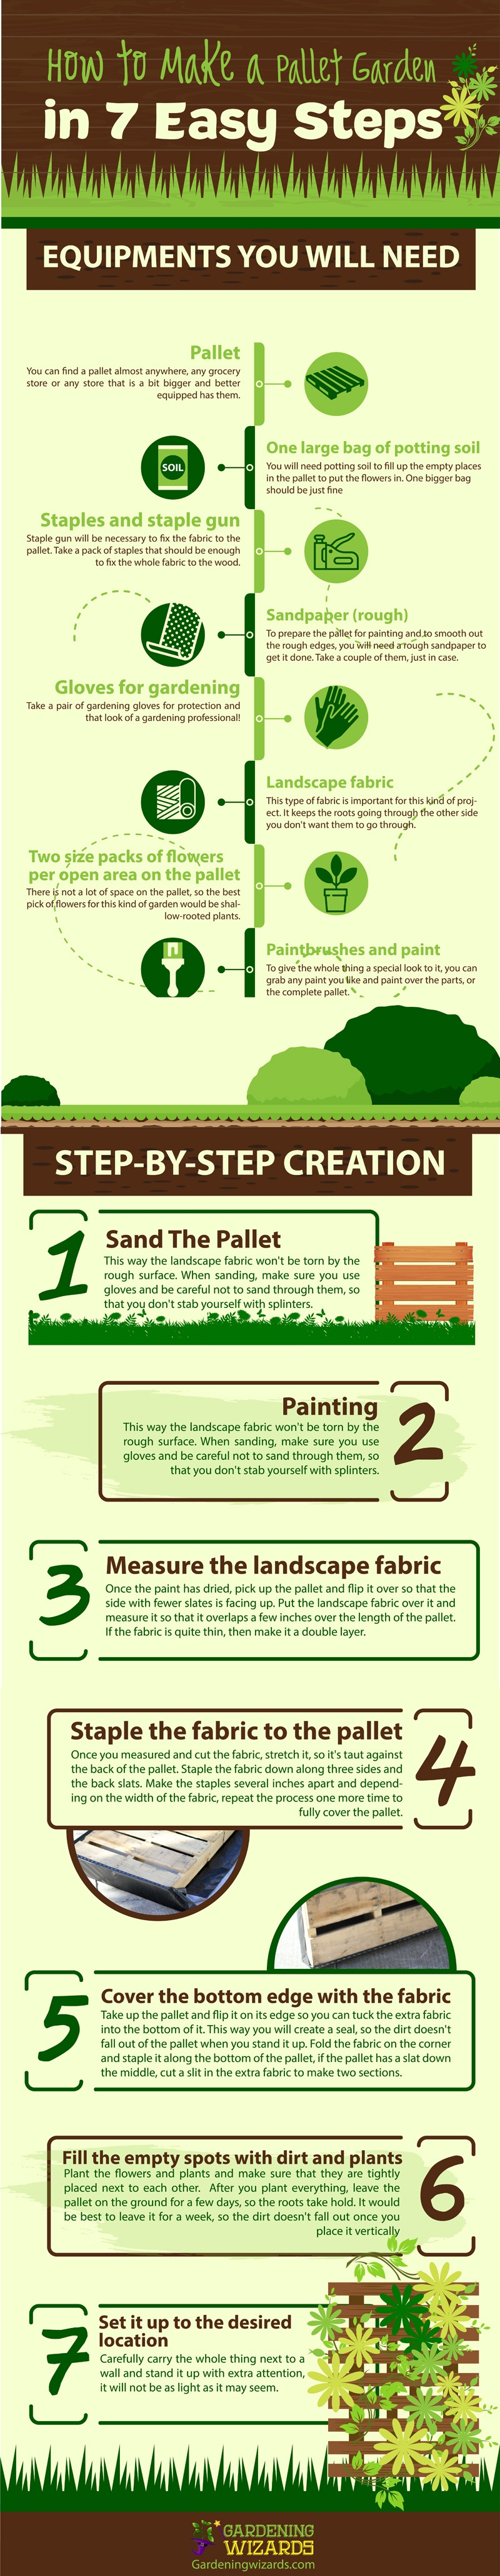 Infographic How to Make a Pallet Garden in 7 Easy Steps